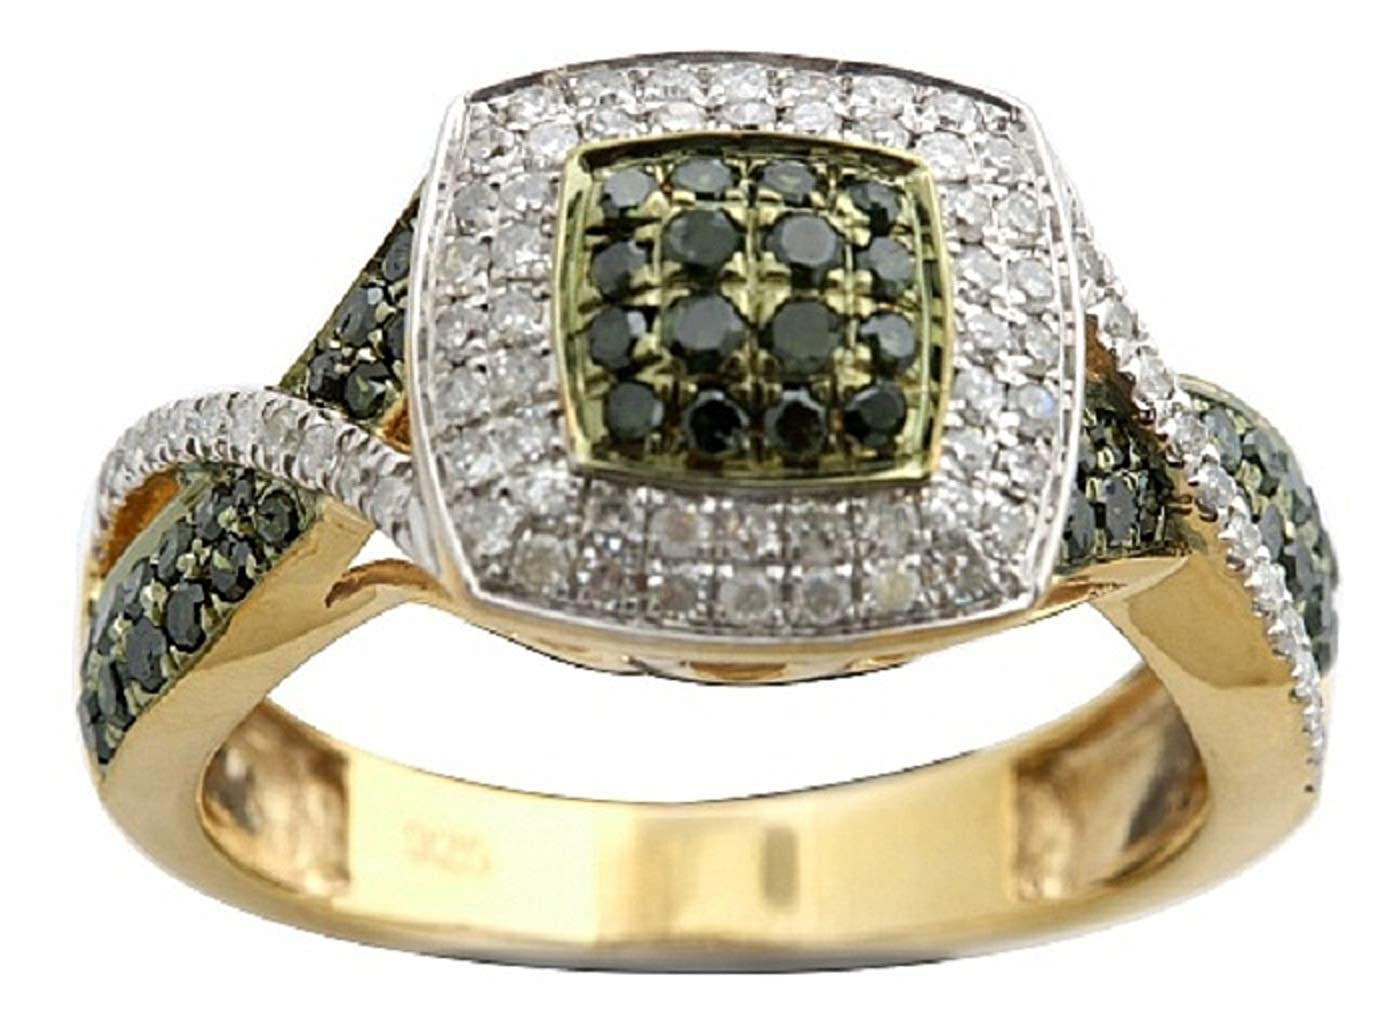 Prism Jewel 0.77 TCW Round Green Diamond With Diamond Engagement Ring